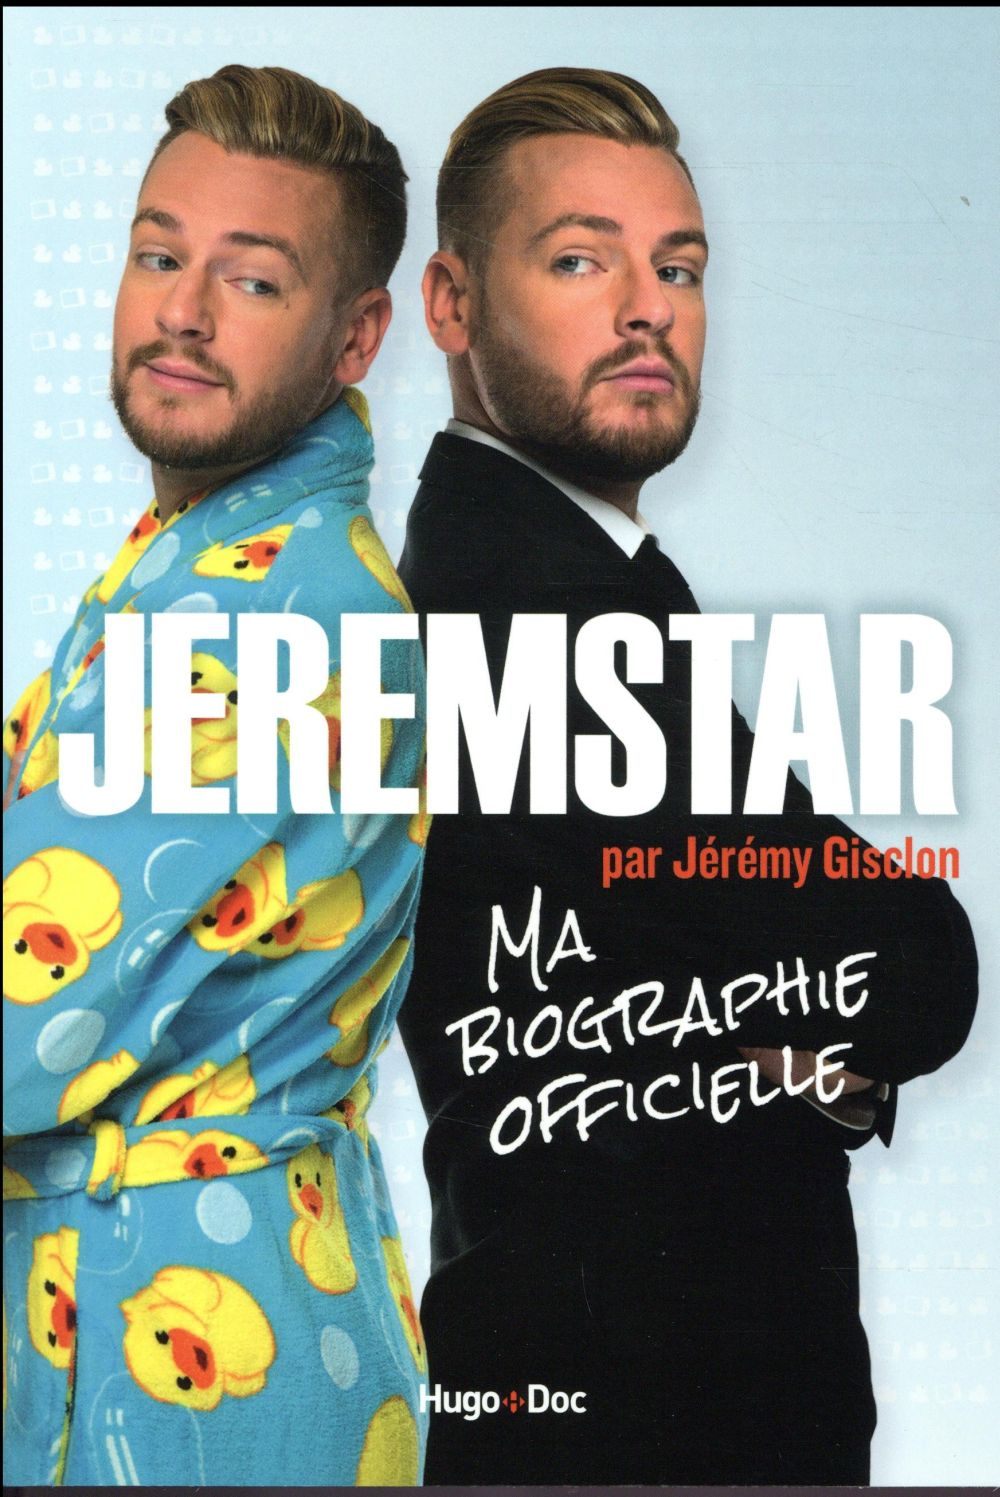 JEREMSTAR PAR JEREMY GISCLON, MA BIOGRAPHIE OFFICIELLE